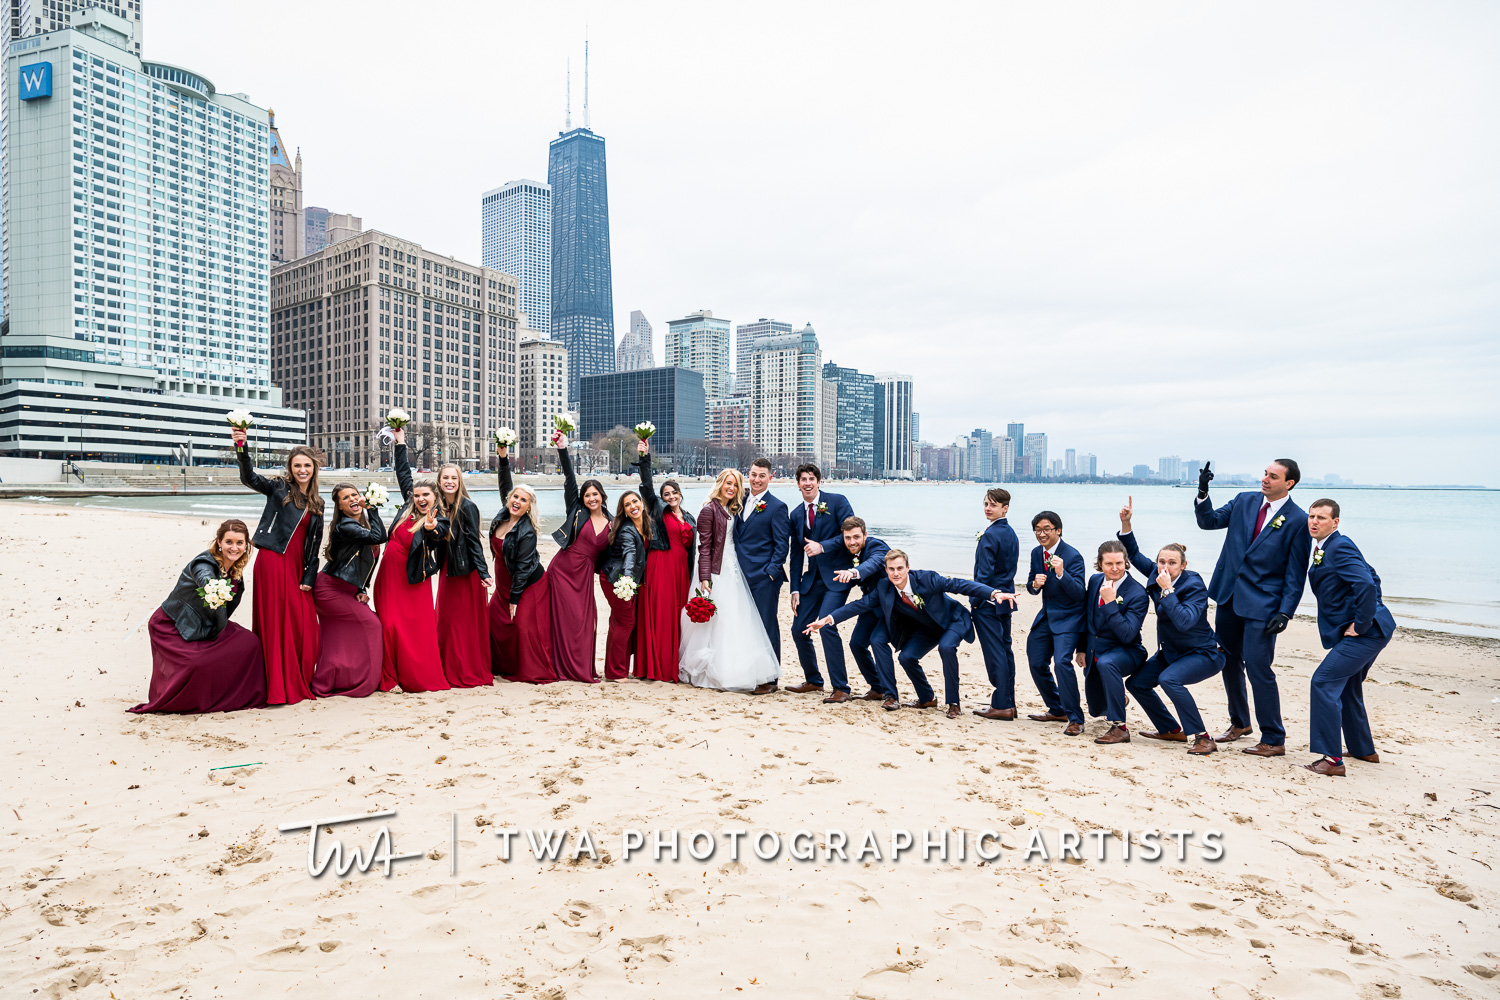 Your First Wedding Planning To-Do's | TWA Photographic Artists | Chicago Wedding Photographers